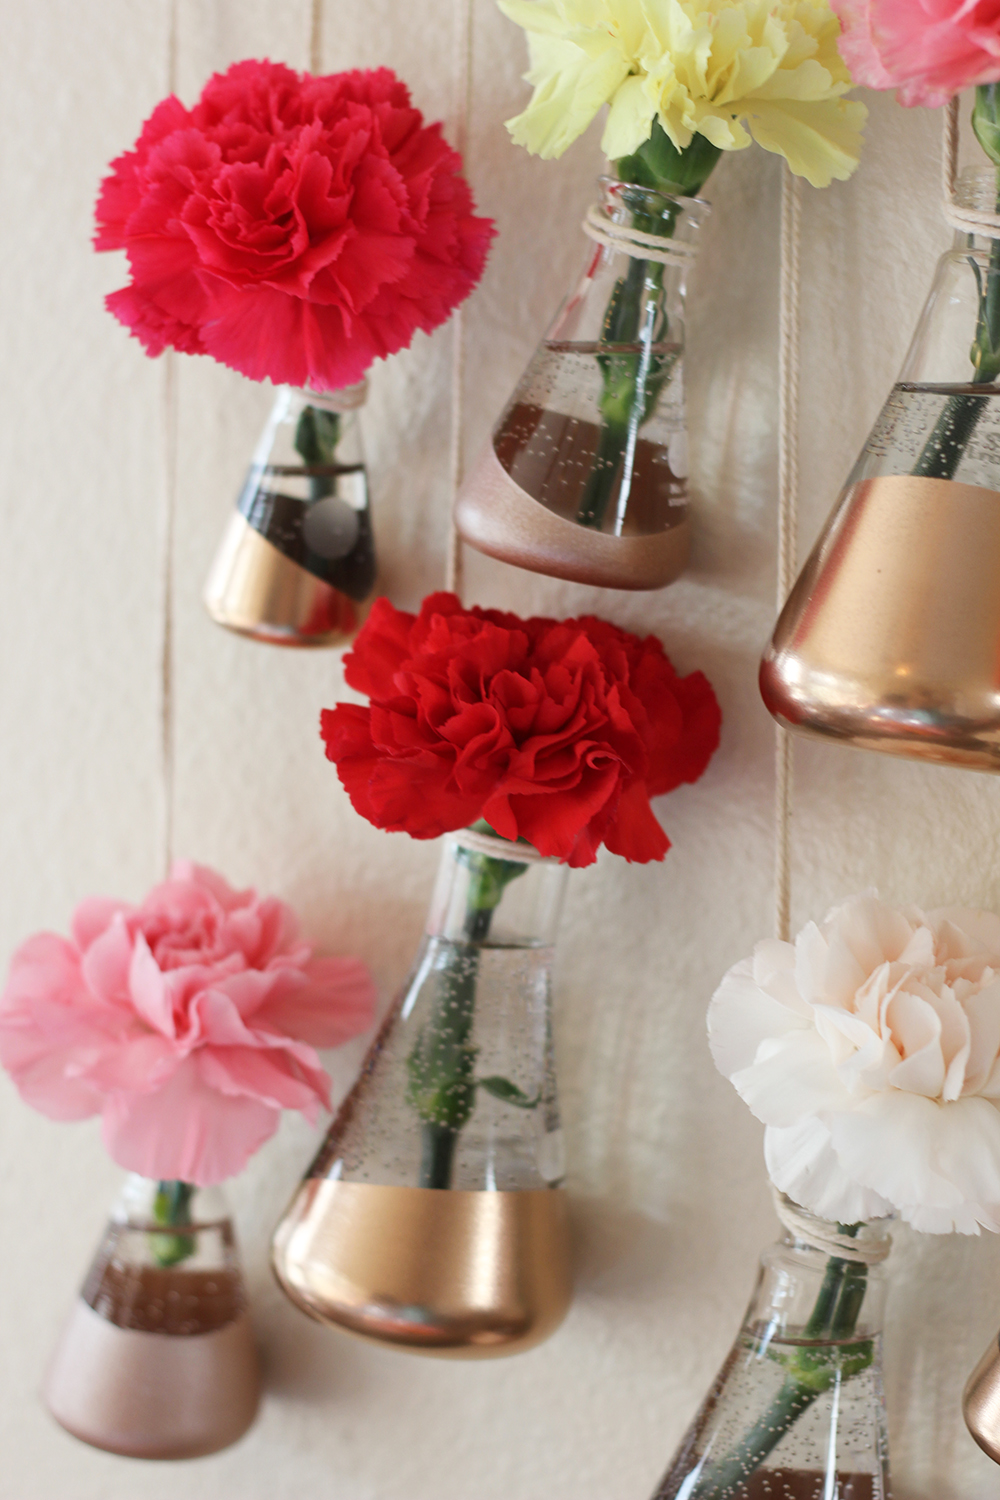 rose-gold-hanging-bud-vases-4